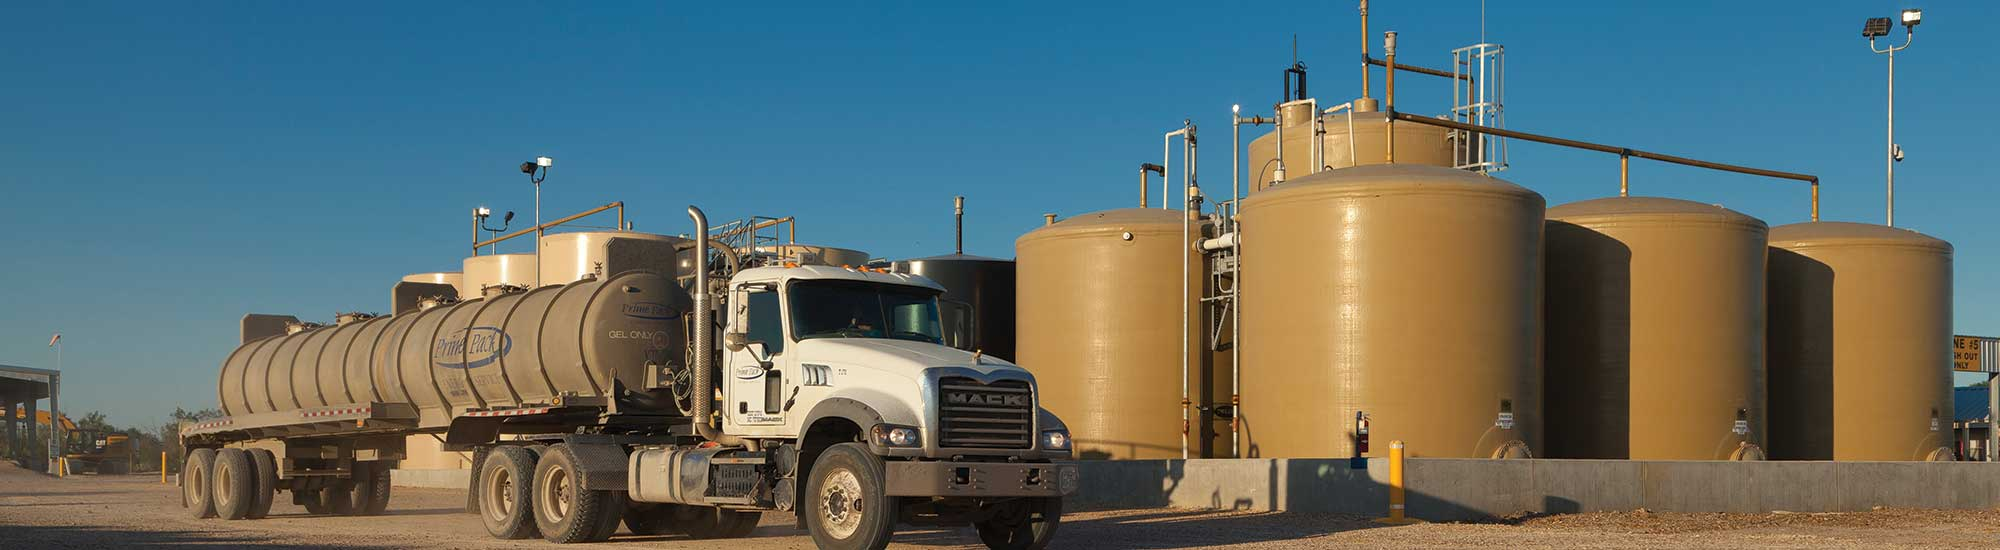 Hew-Tex Oil & Gas Corp